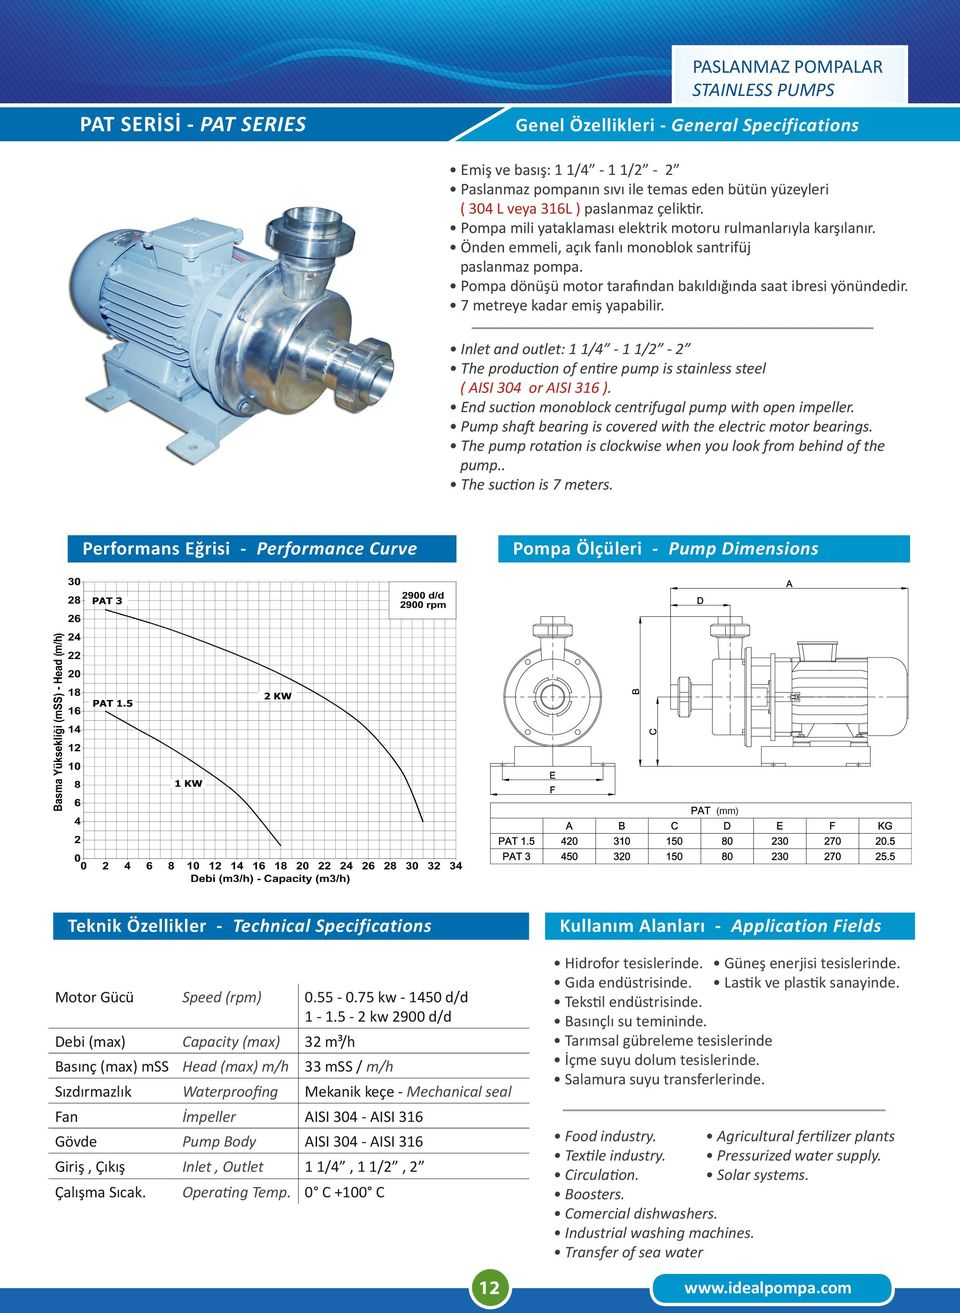 (mm) Motor Gücü Speed (rpm) 0.55-0.75 kw - 1450 d/d 1-1.